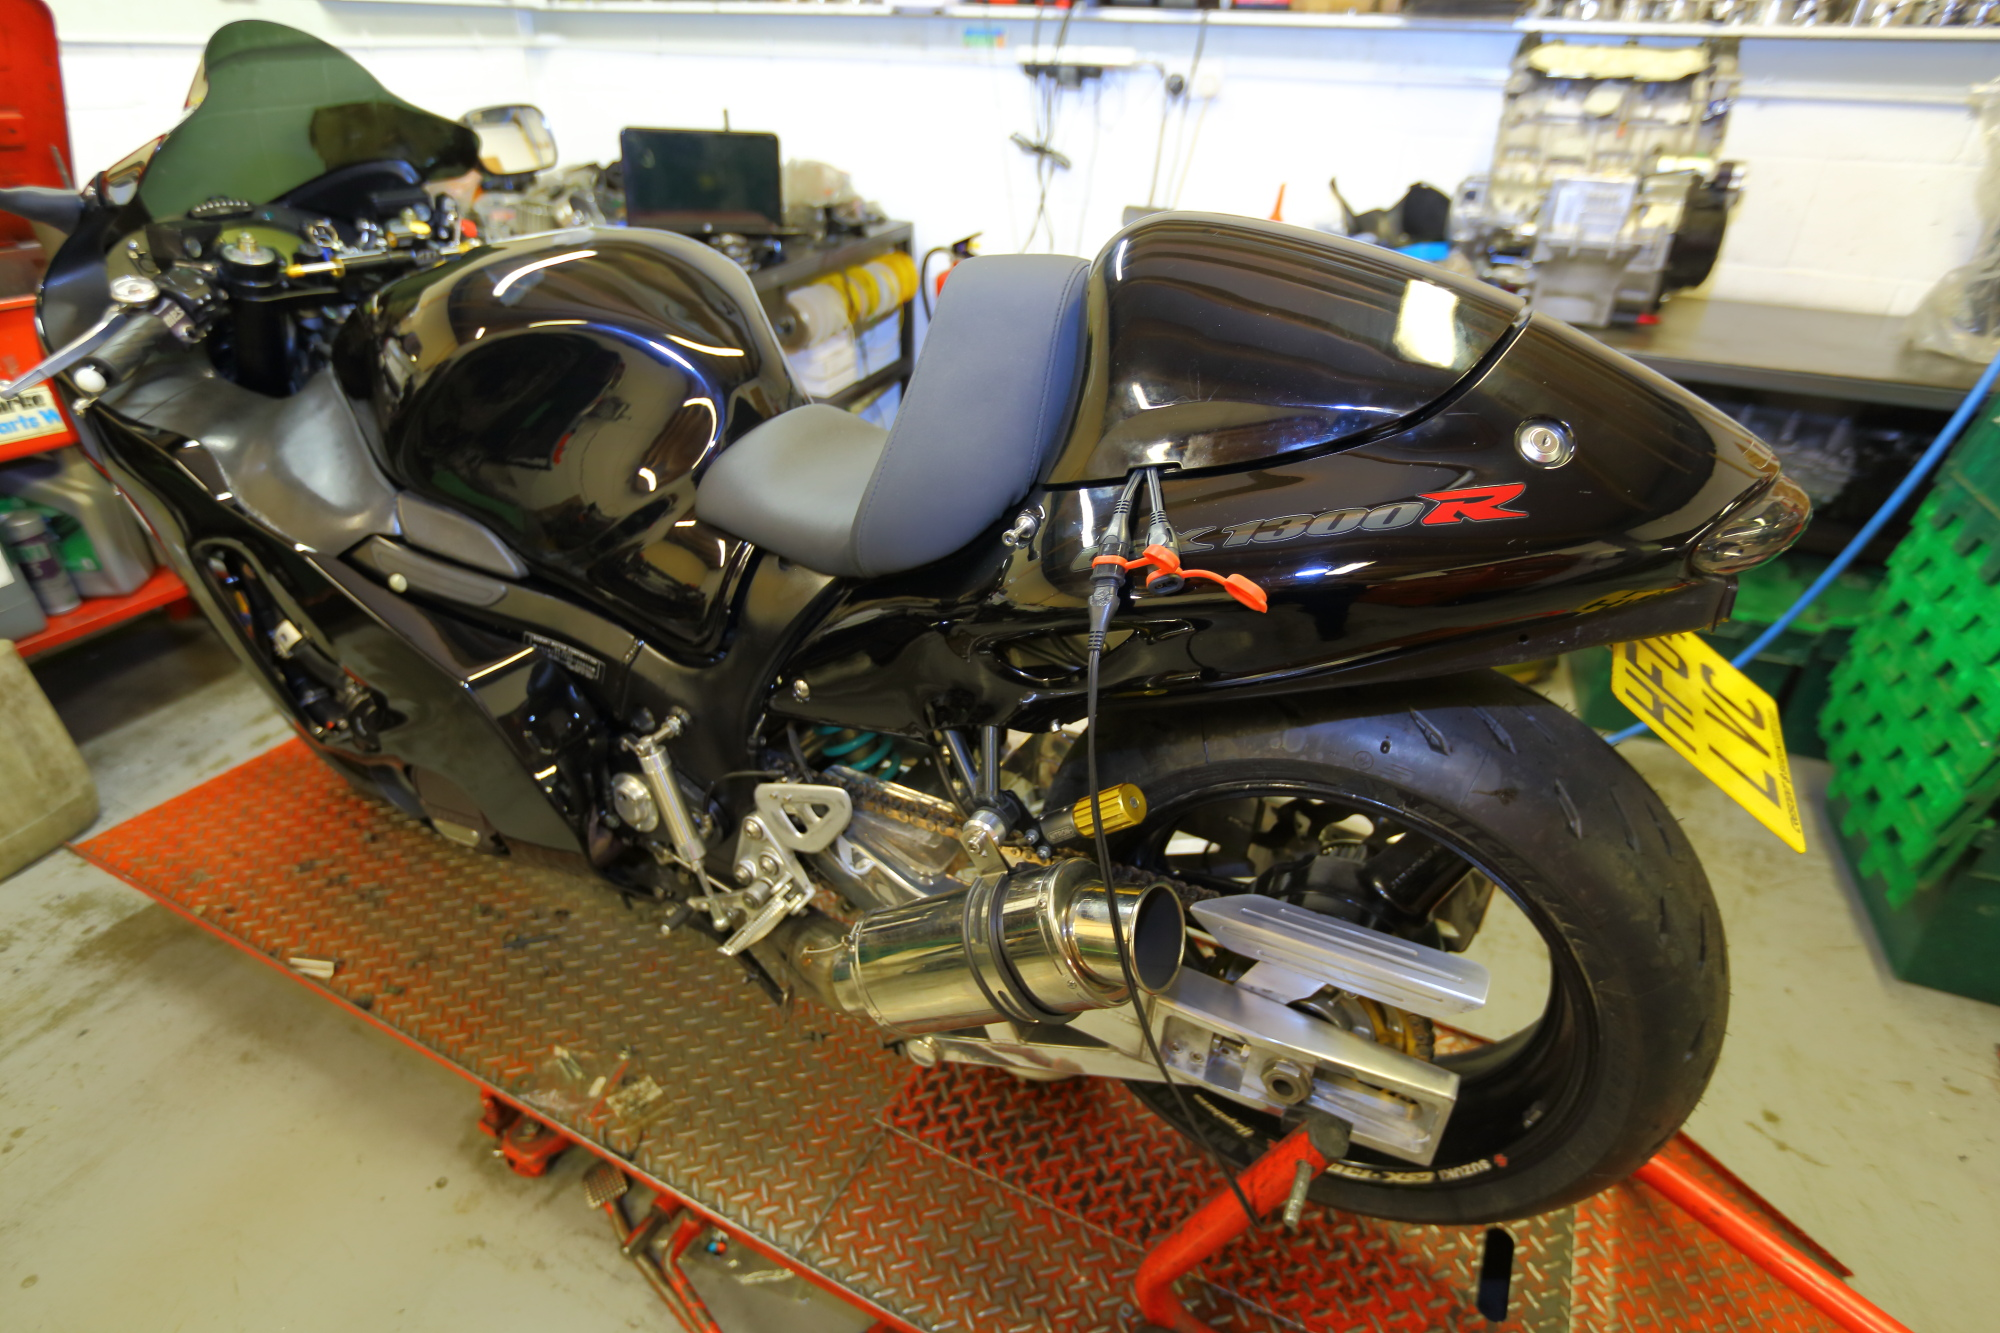 1000bhp Big CC road legal Hayabusa on the bench